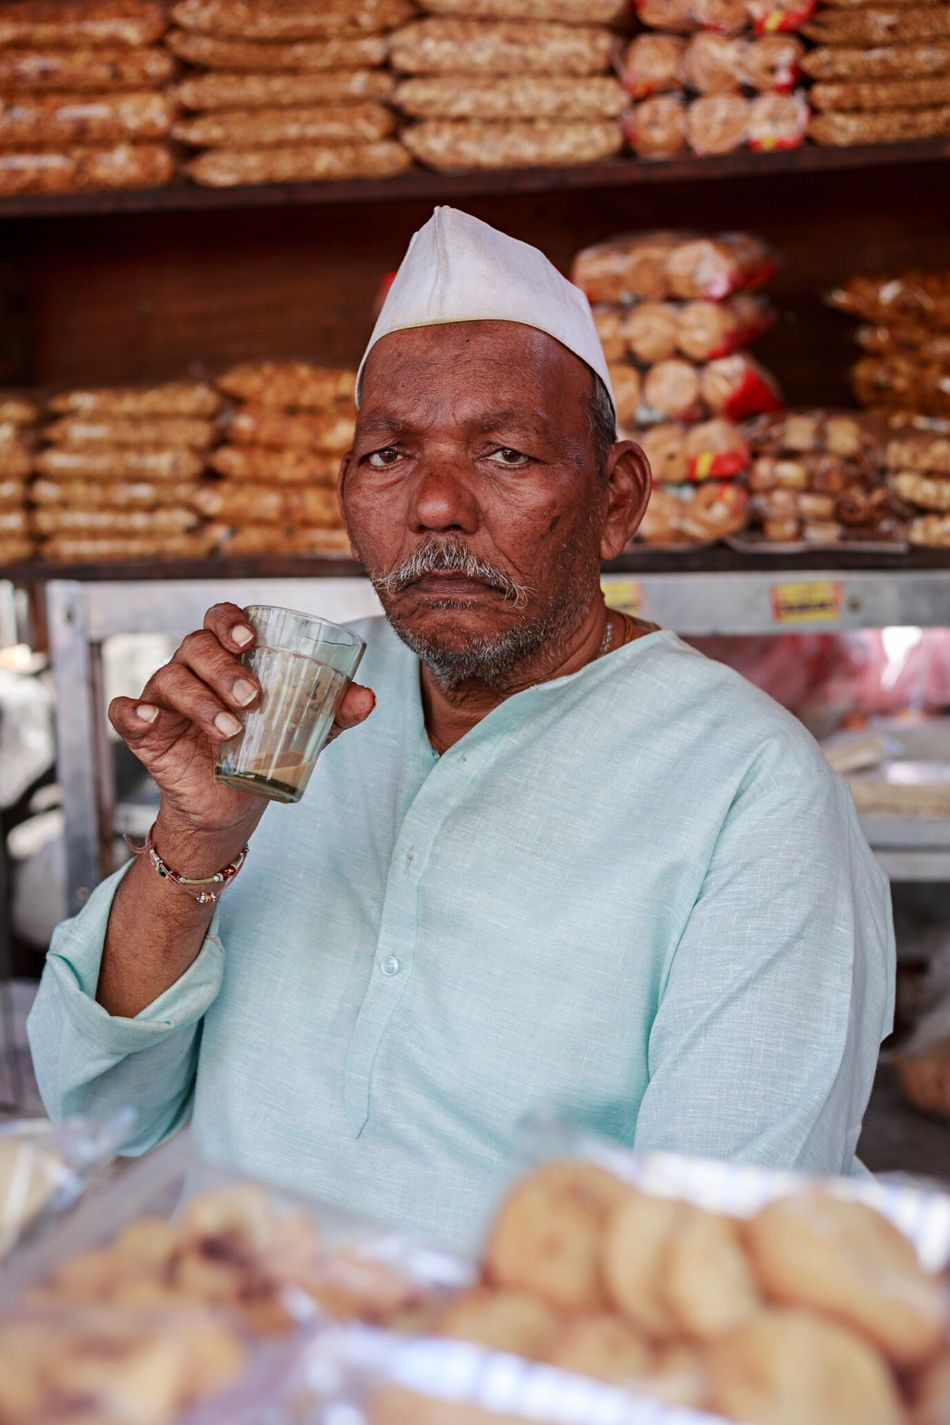 Cutting Chai / Half A Glass Tea, is what we call it in Hindi. A General Store Vendor Drinking his cup of tea. Pune, India. Food Senior Adult Adults Only Only Men Men Portrait Eating Looking At Camera Males  Adult One Man Only Archival Groceries People Gourmet Currency Buying